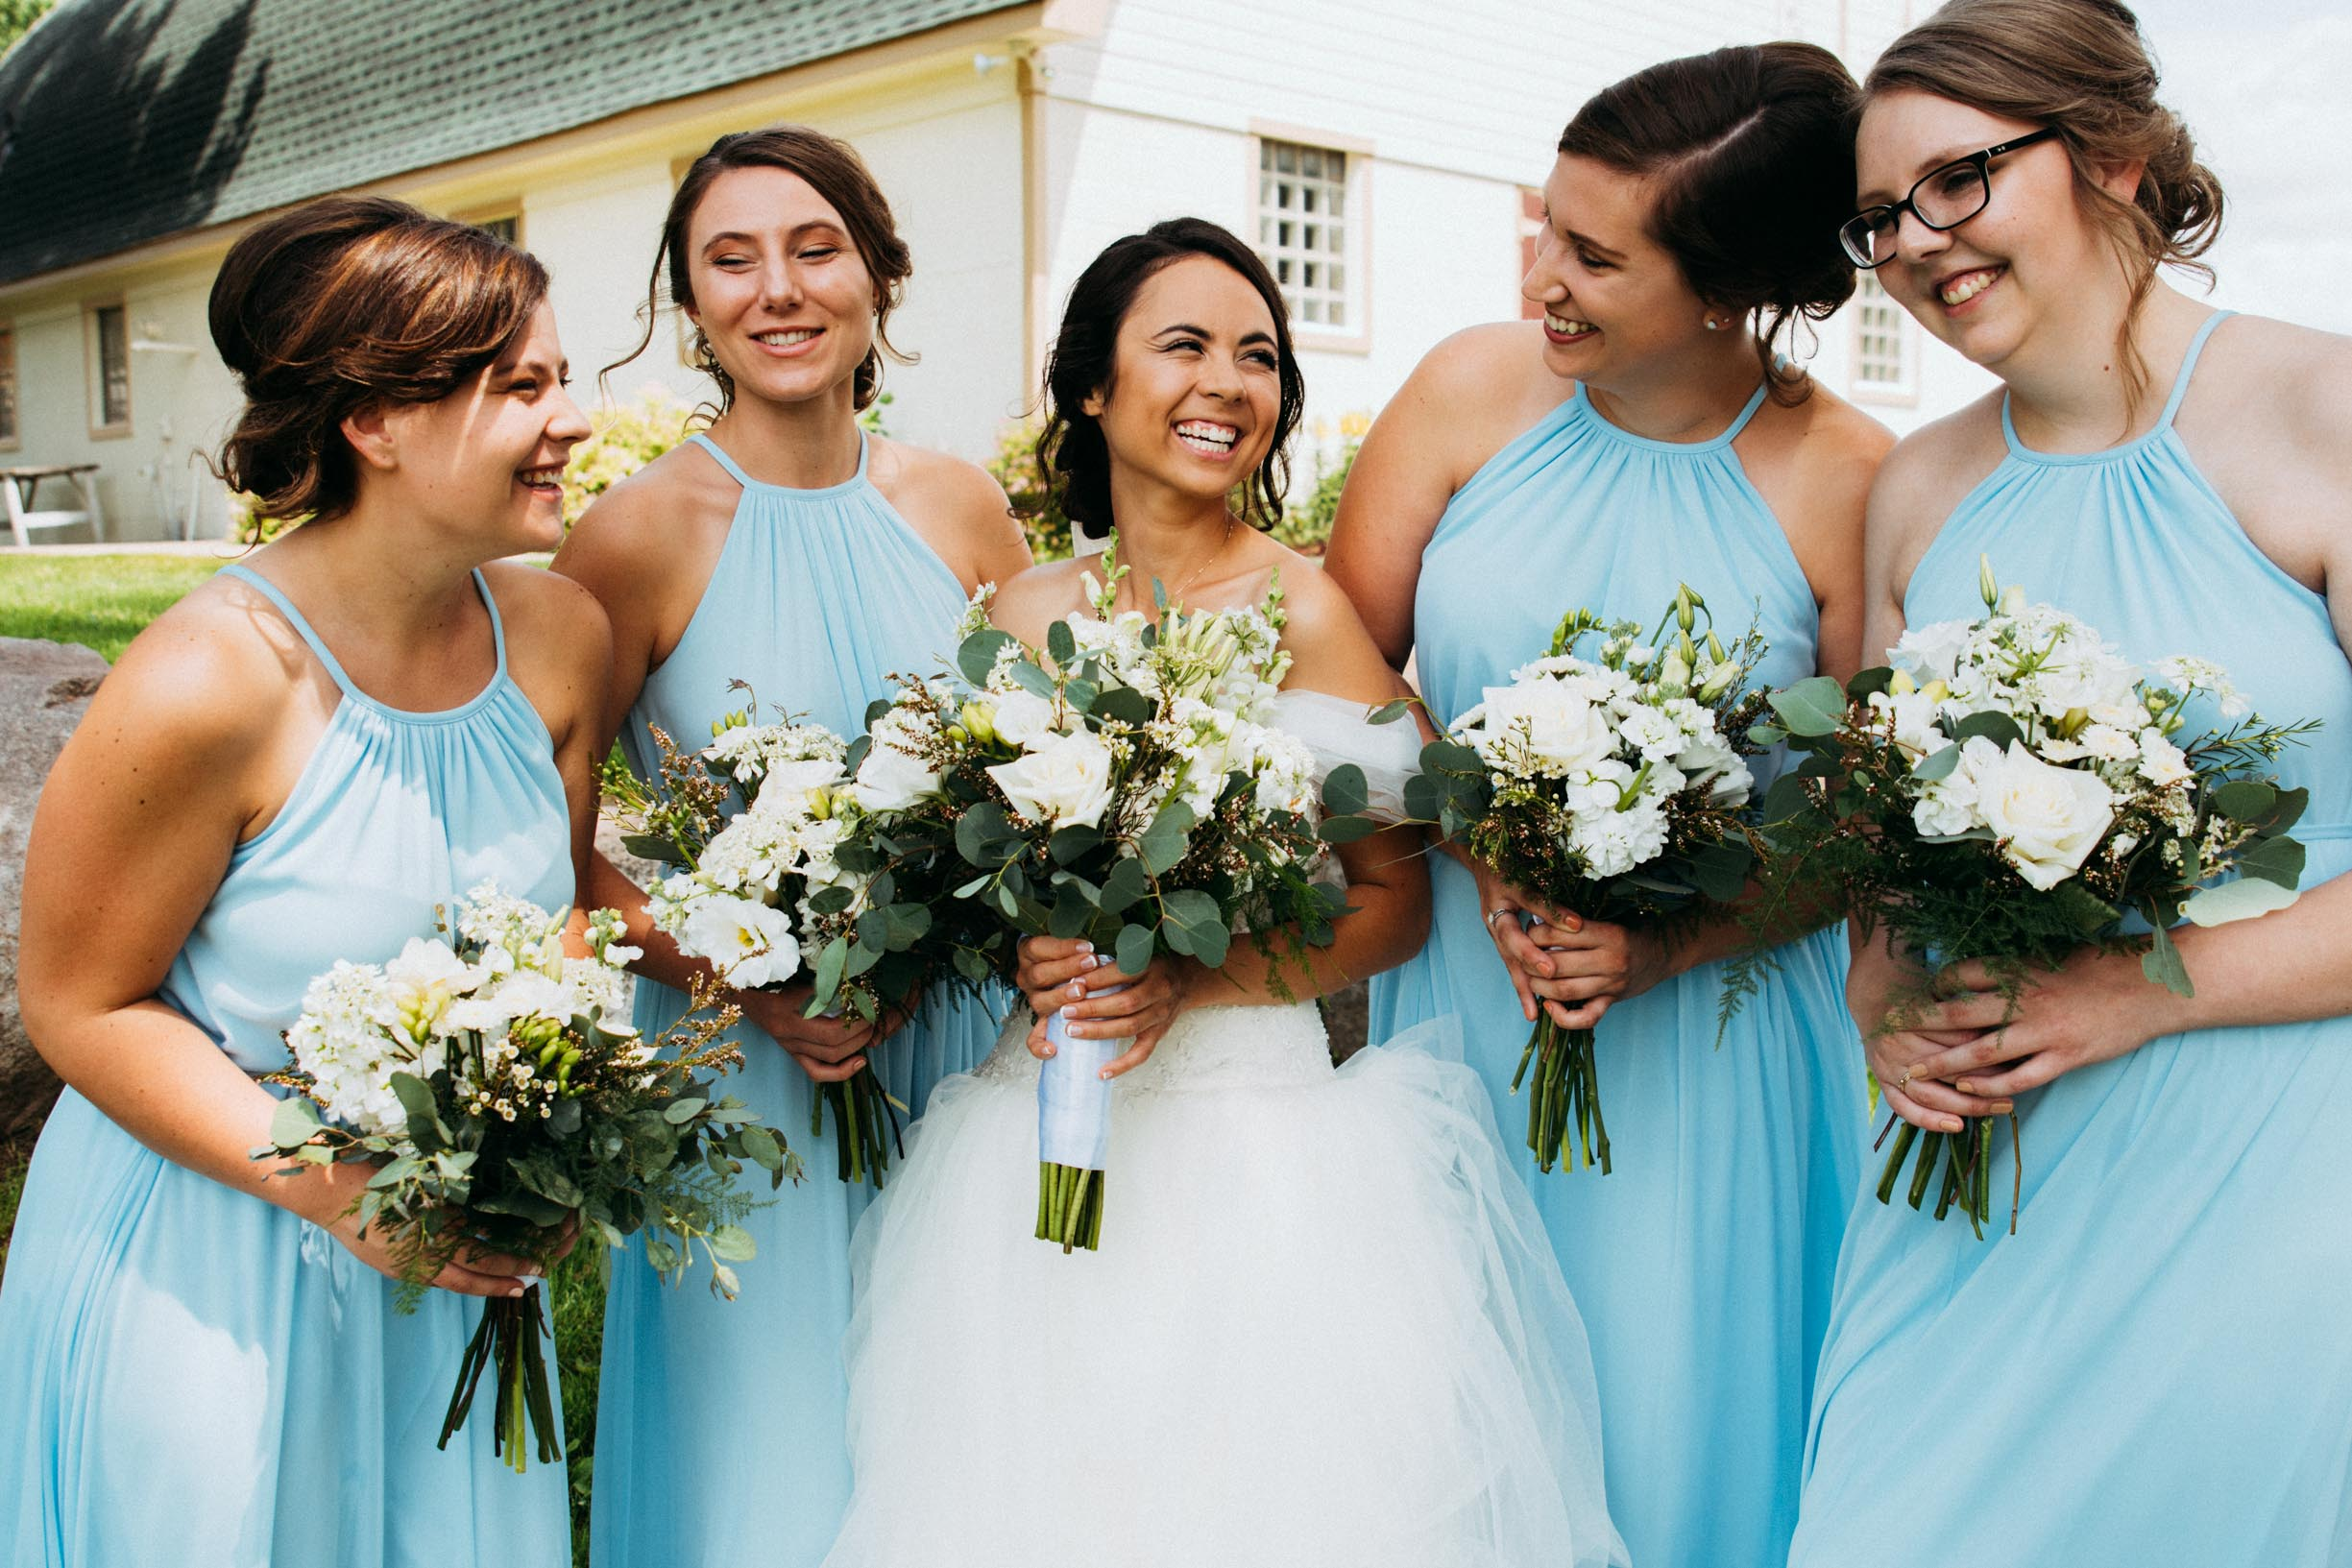 Minnesota_Bridesmaids_Portraits_02.jpg